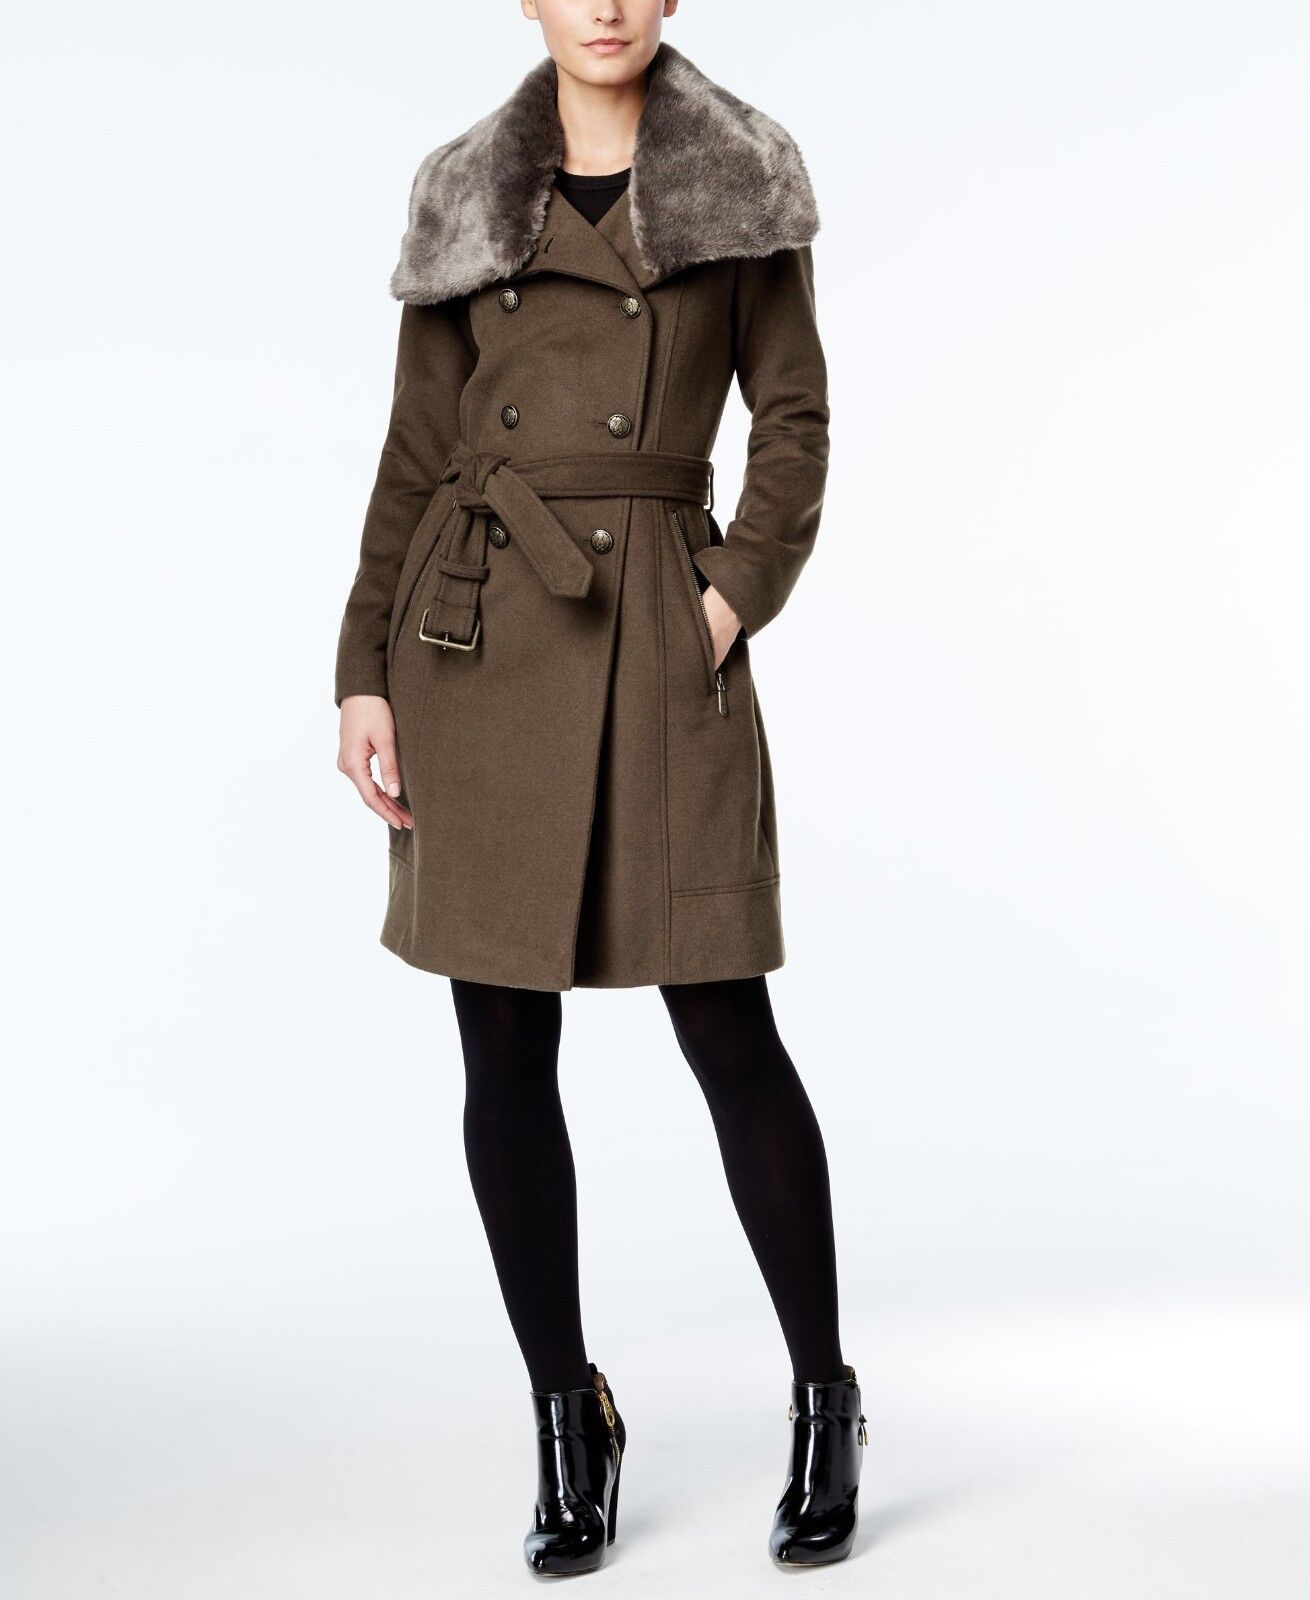 0ece415fb Fur Faux Women's Camuto Vince Double Collar M Green Army , Coat ...